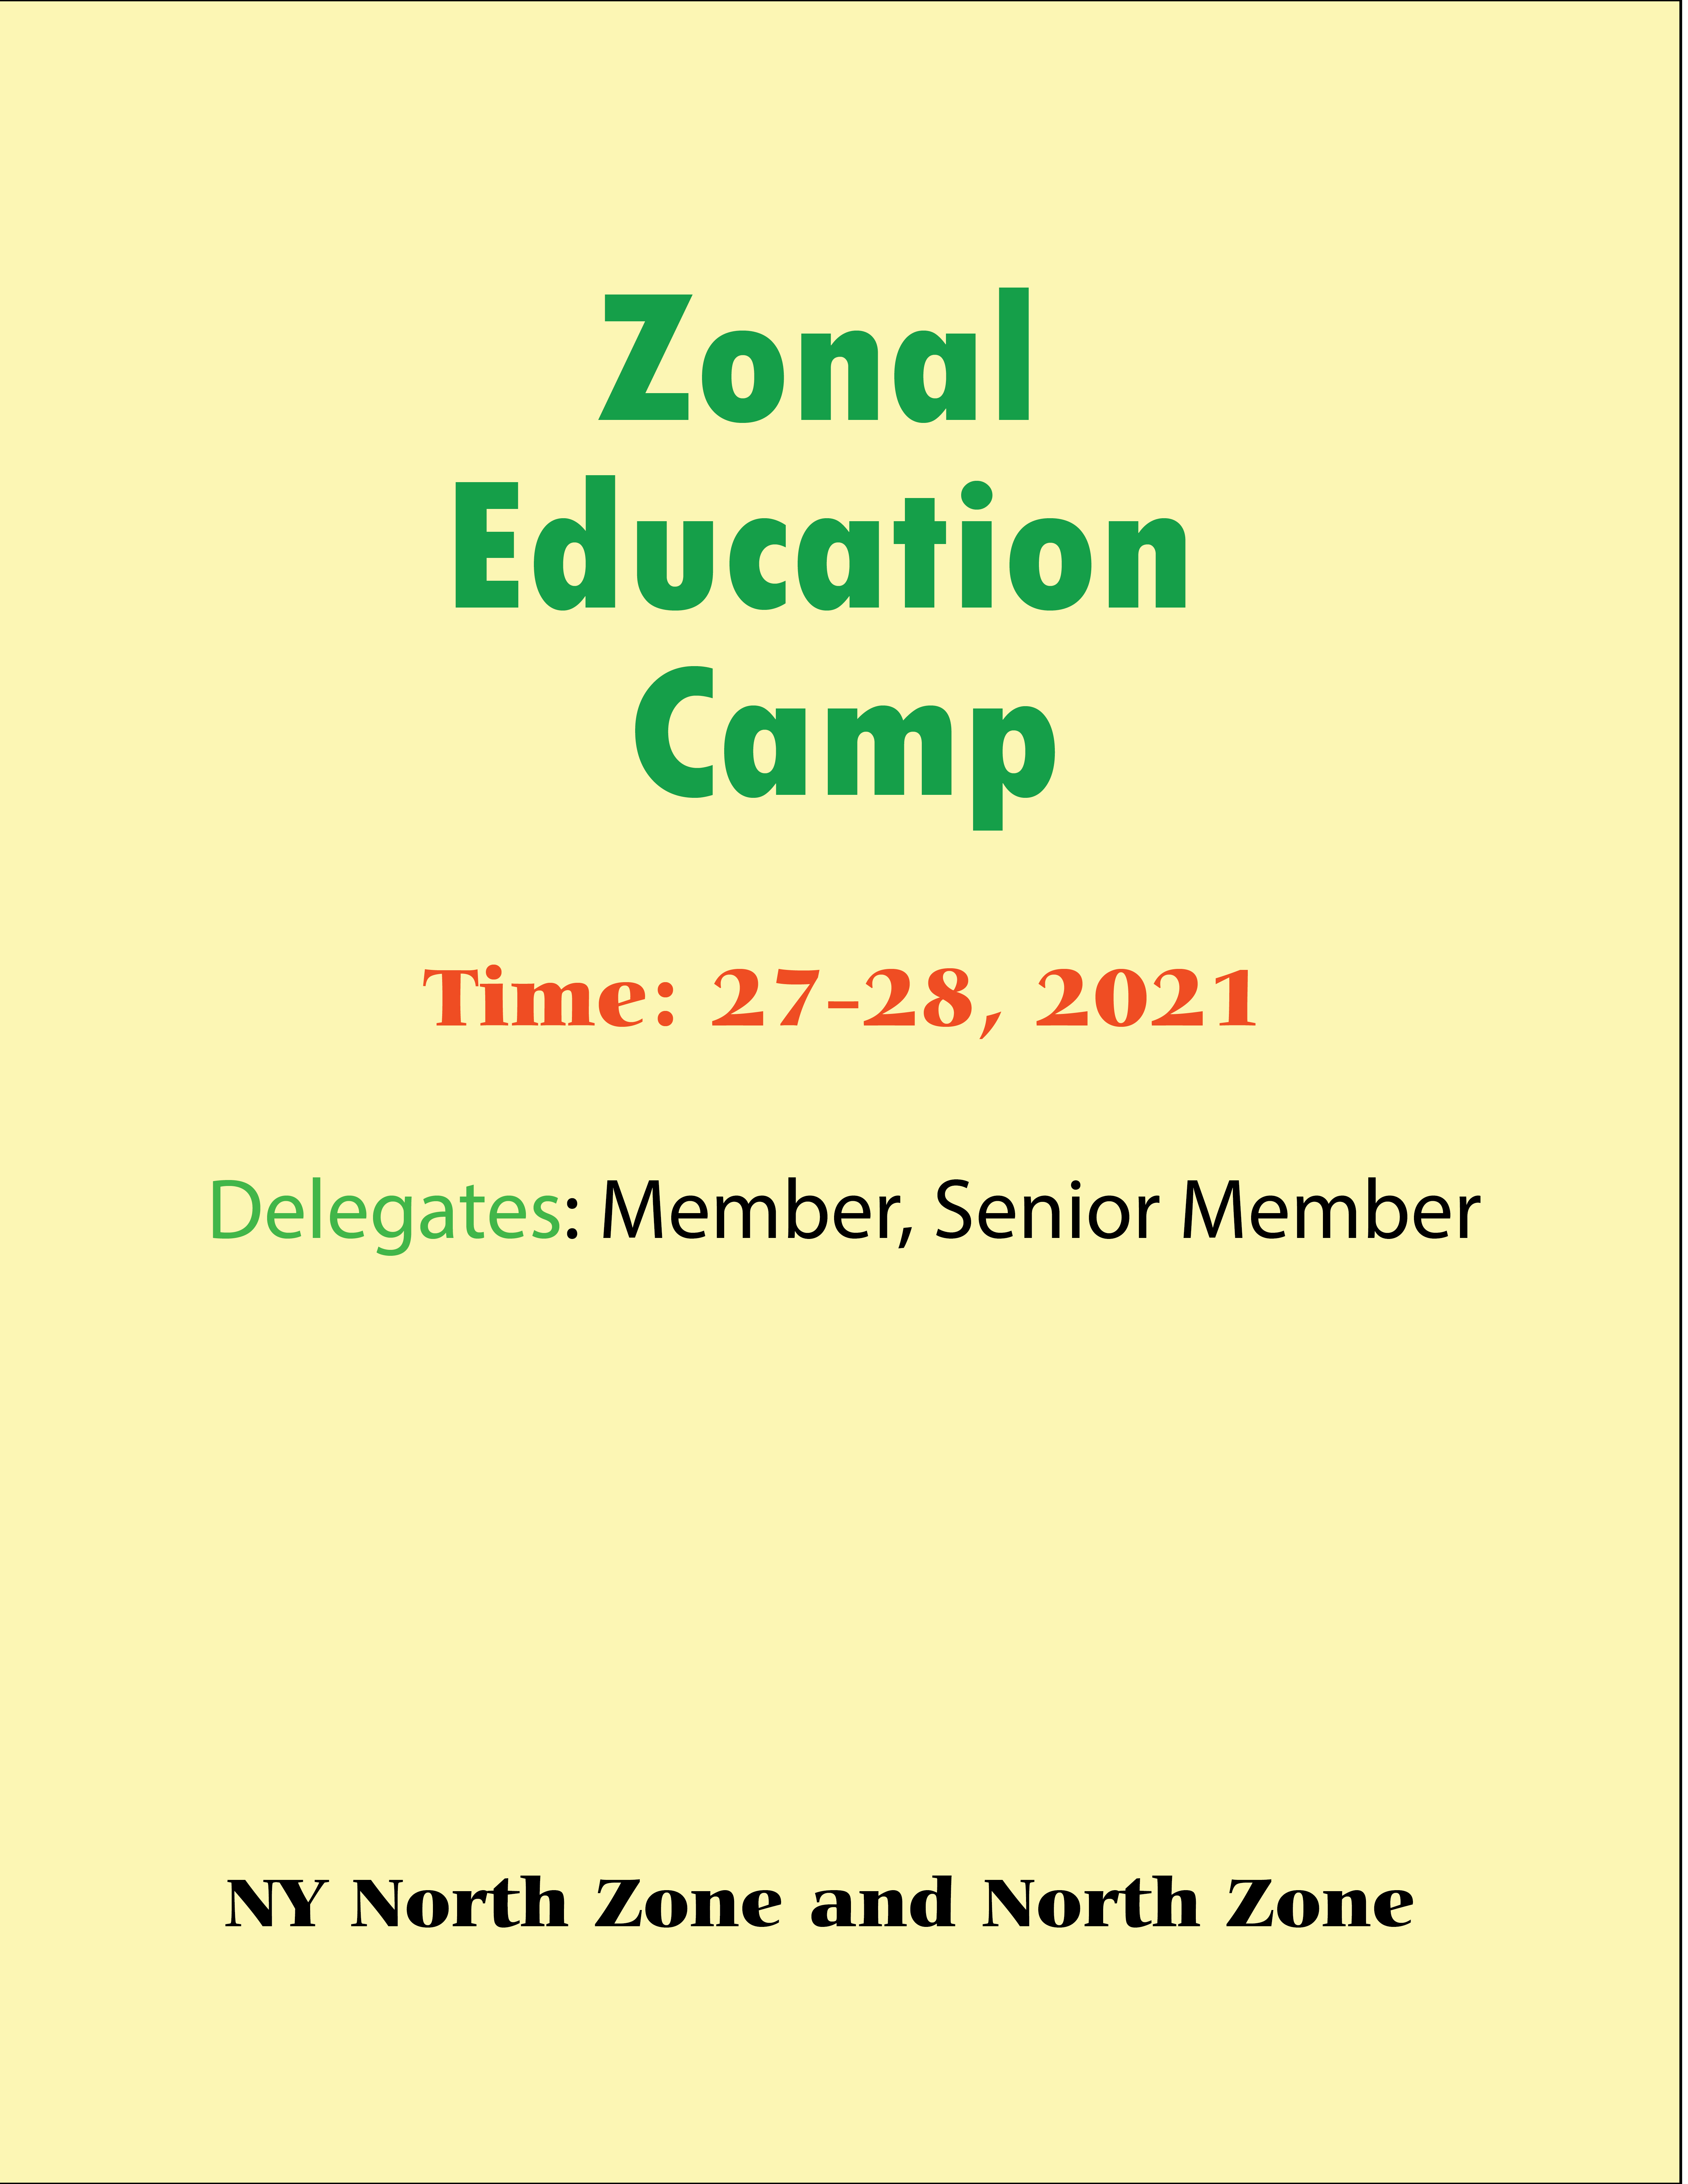 Zonal Education Camp